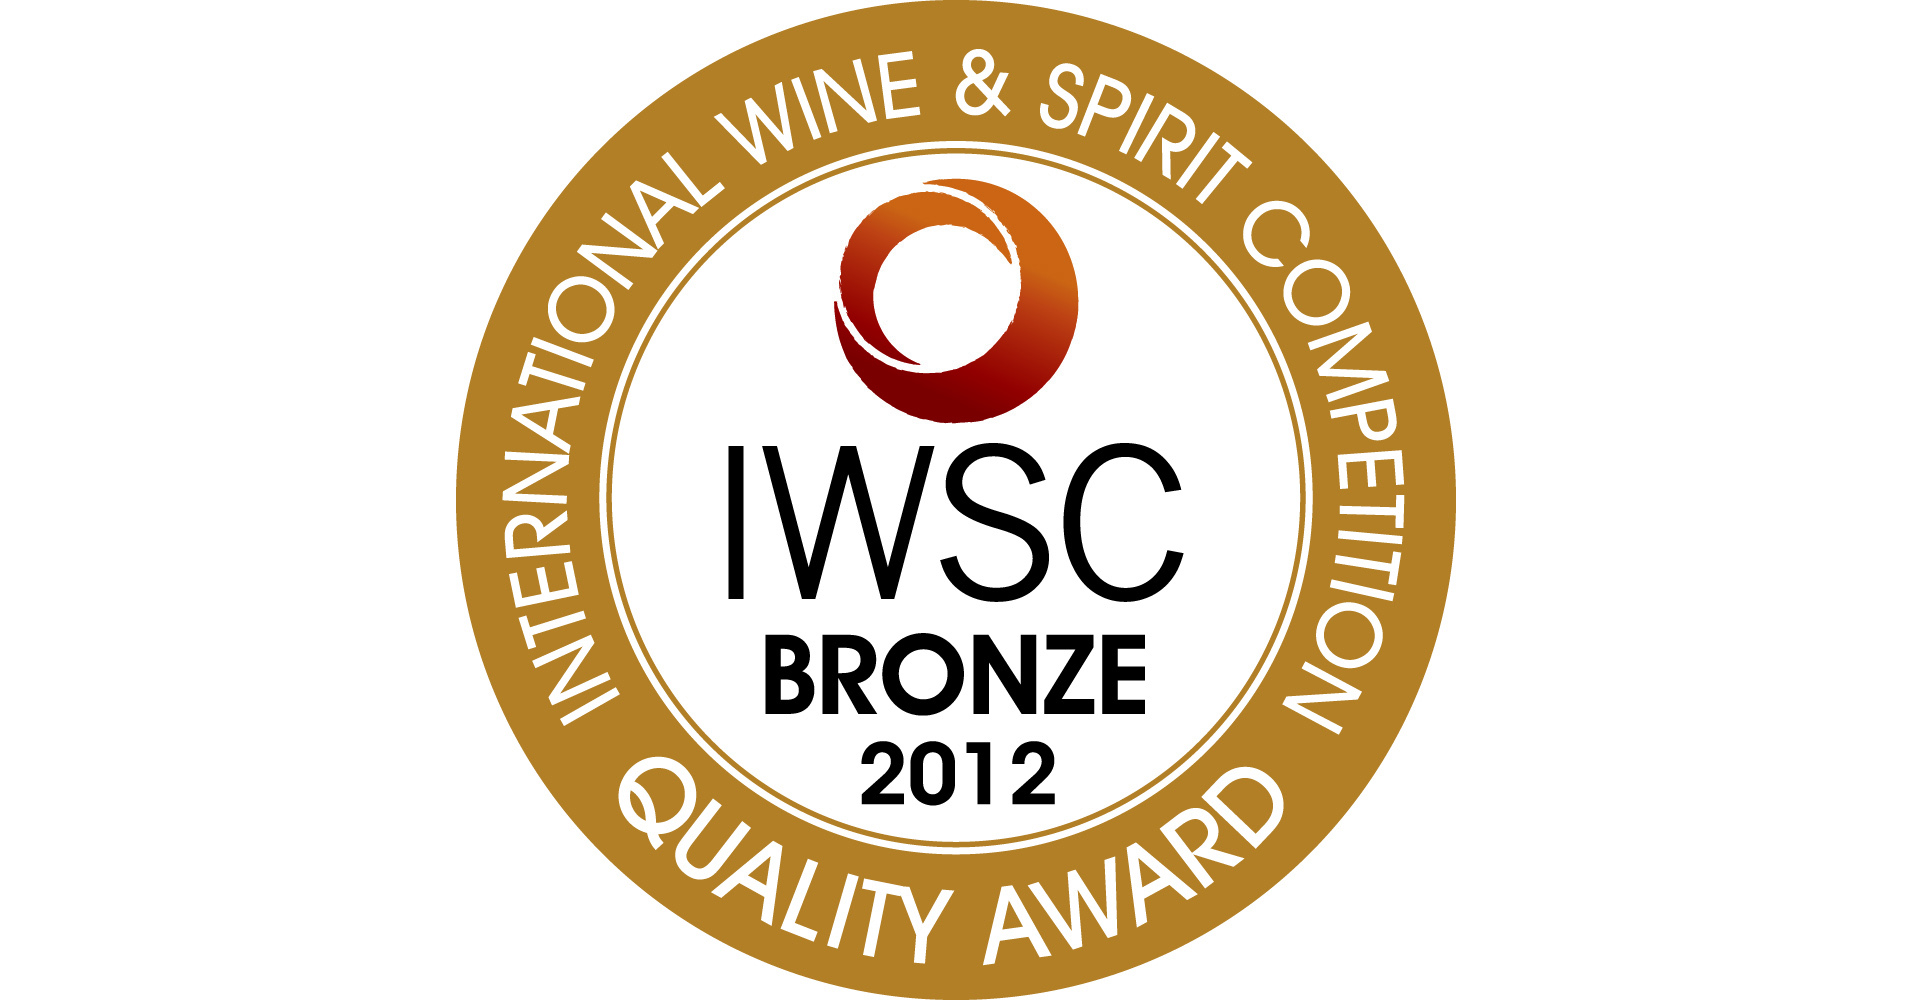 Bronze Award for Carmelita Malbec 2010